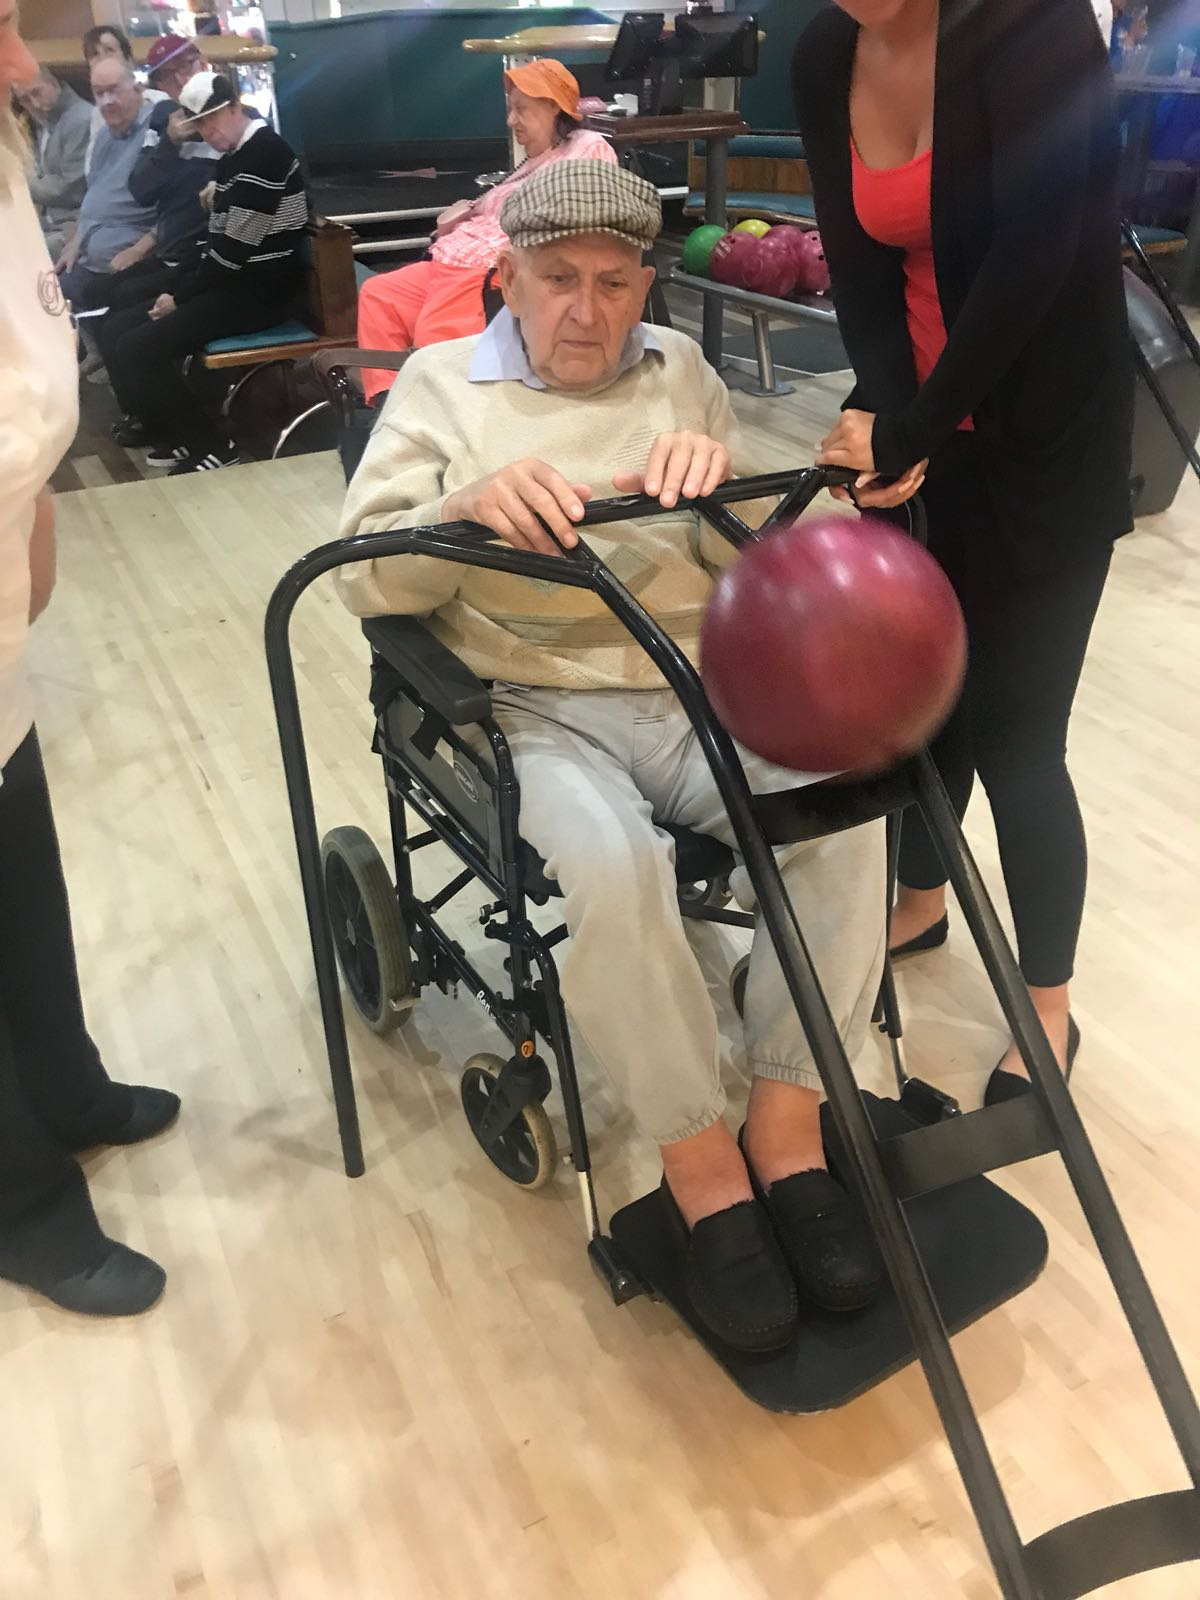 Bowling 2018: Key Healthcare is dedicated to caring for elderly residents in safe. We have multiple dementia care homes including our care home middlesbrough, our care home St. Helen and care home saltburn. We excel in monitoring and improving care levels.